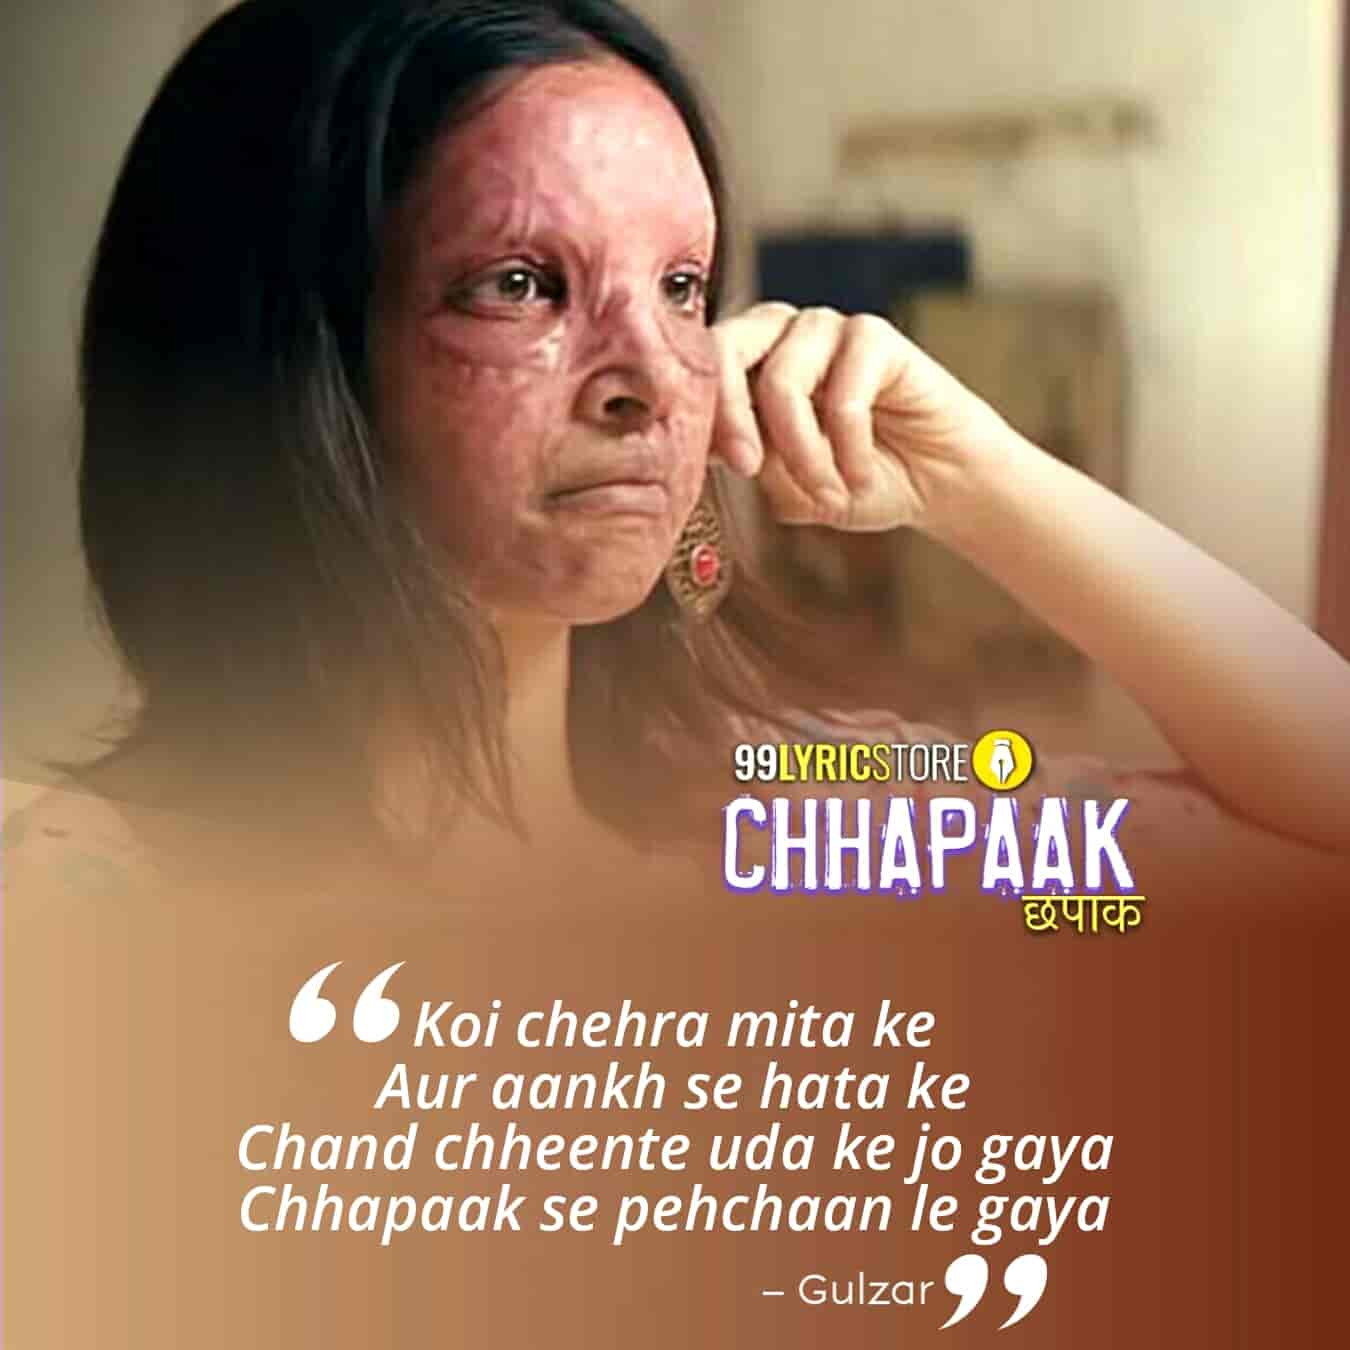 Arijit Singh given his melodius voice in the beautiful title song 'Chhapaak' from Deepika Padunkon starrer movie Chhapaak. Music of this song given by Shankar Ehsaan Loy while this beautiful song Chhapaak Title Track Lyrics penned by Gulzar. This song is presented by Zee Music Company label.